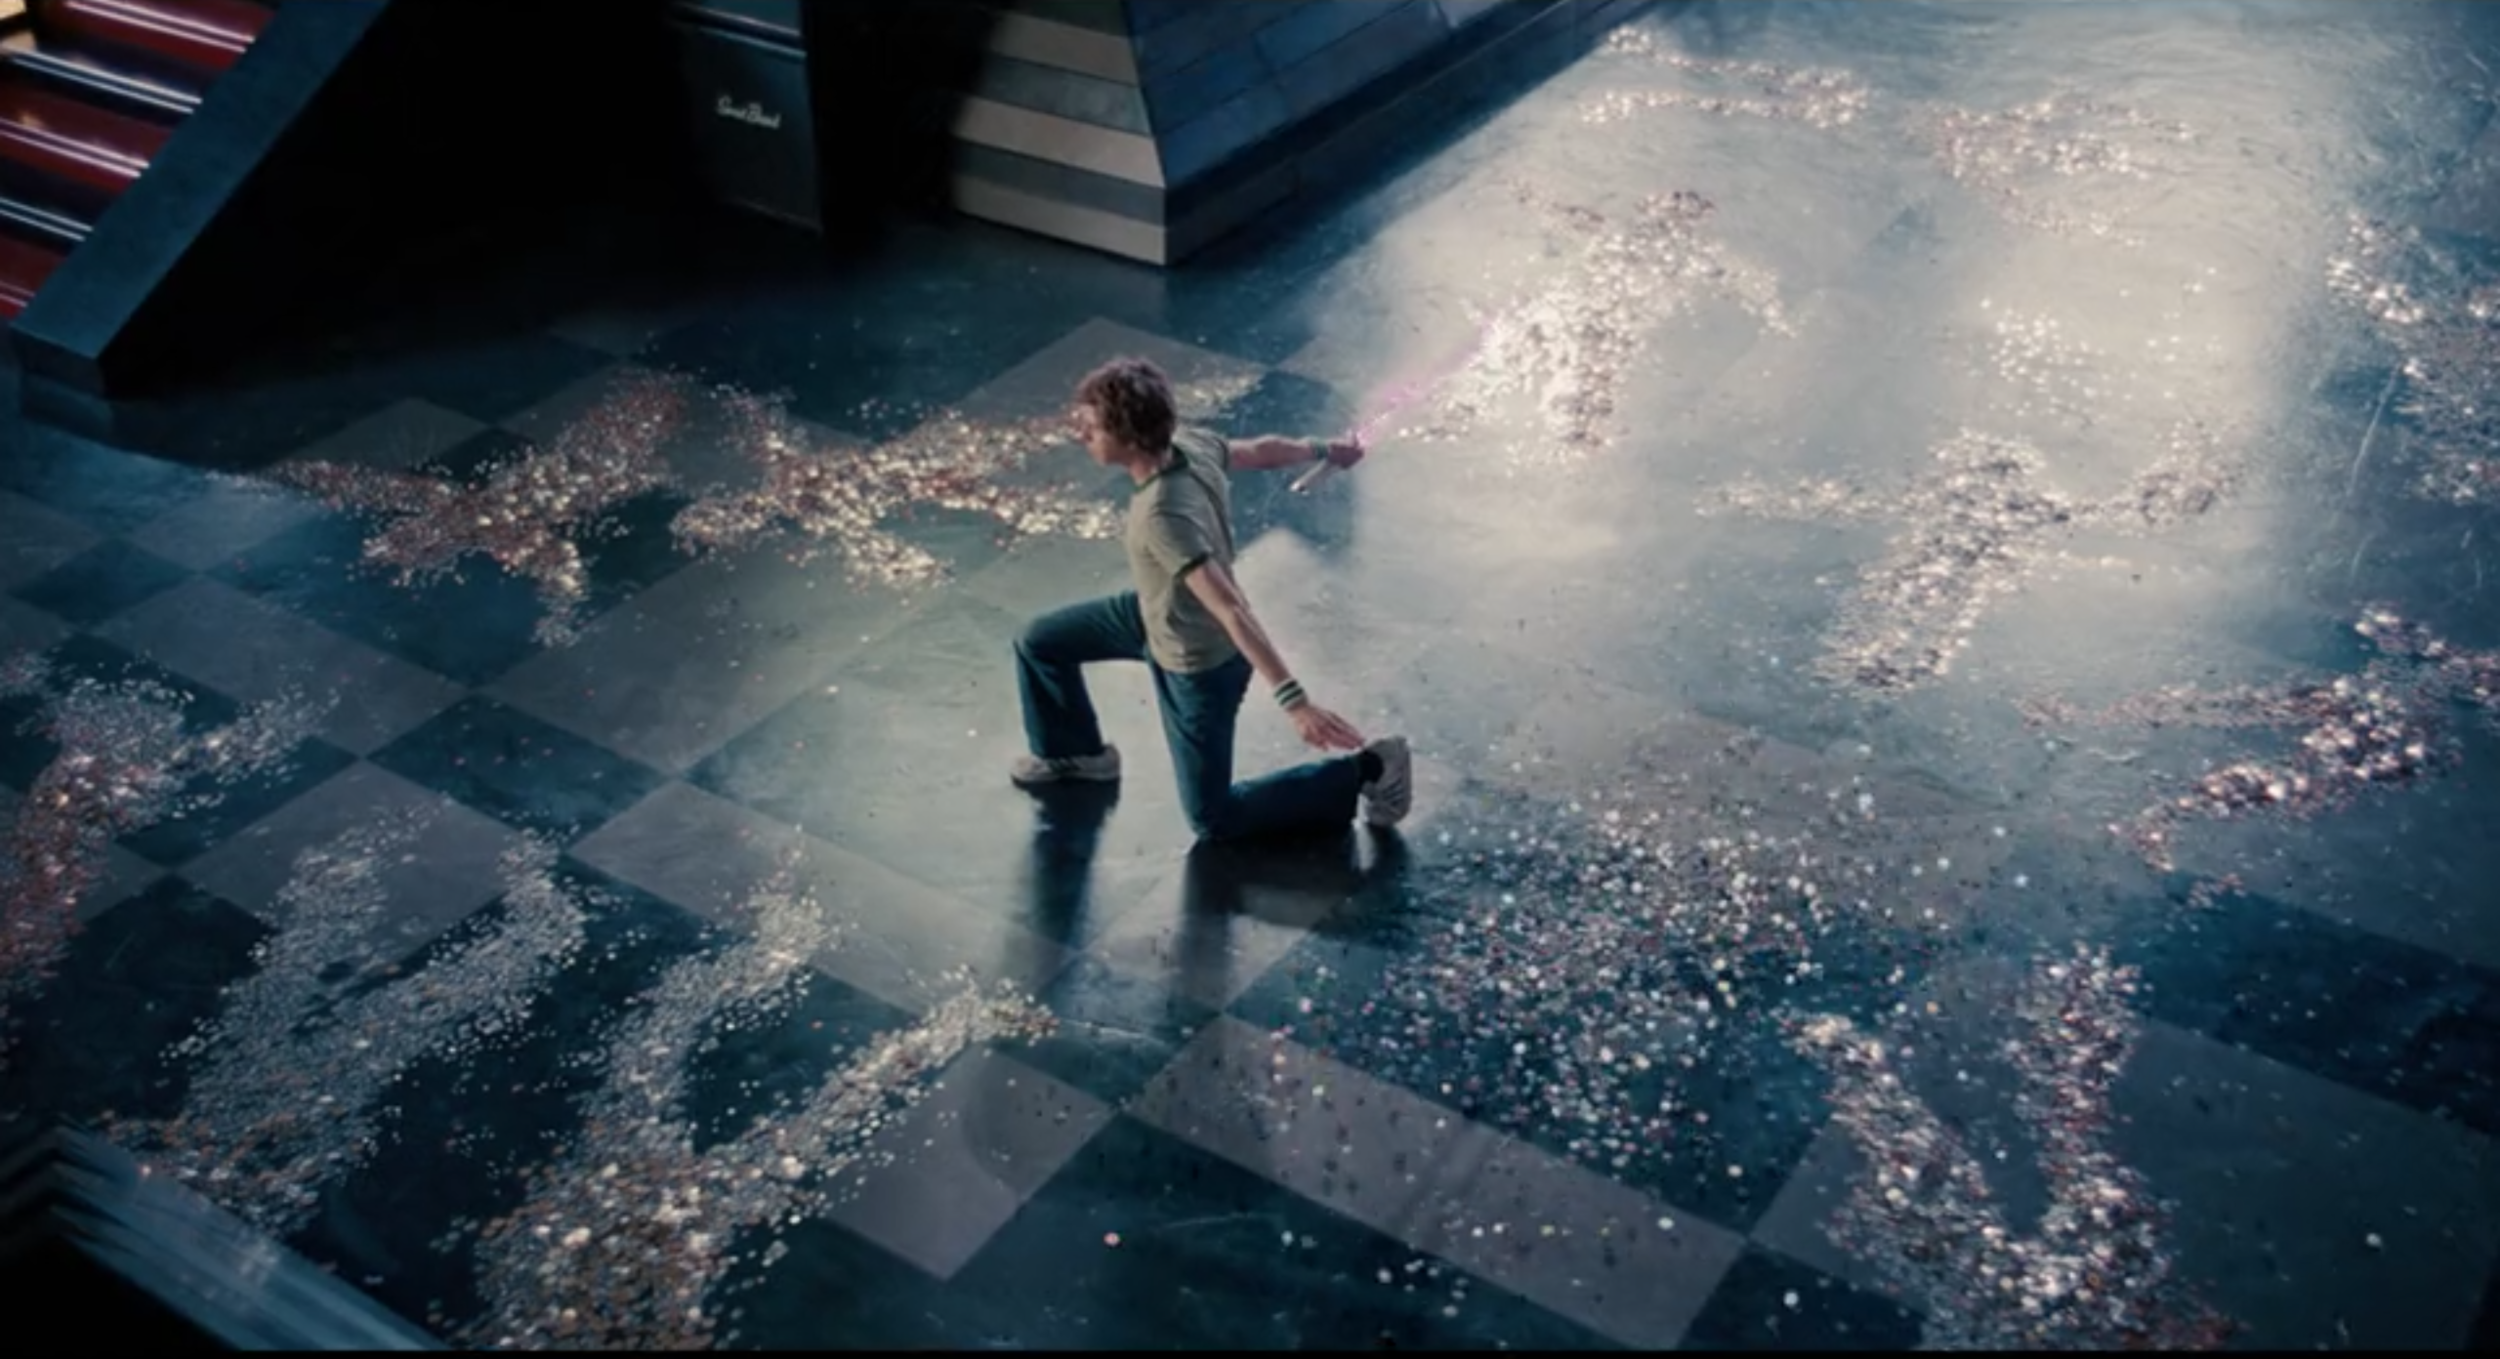 Scott Pilgrim collecting nanites, I mean coins, from his fallen foes